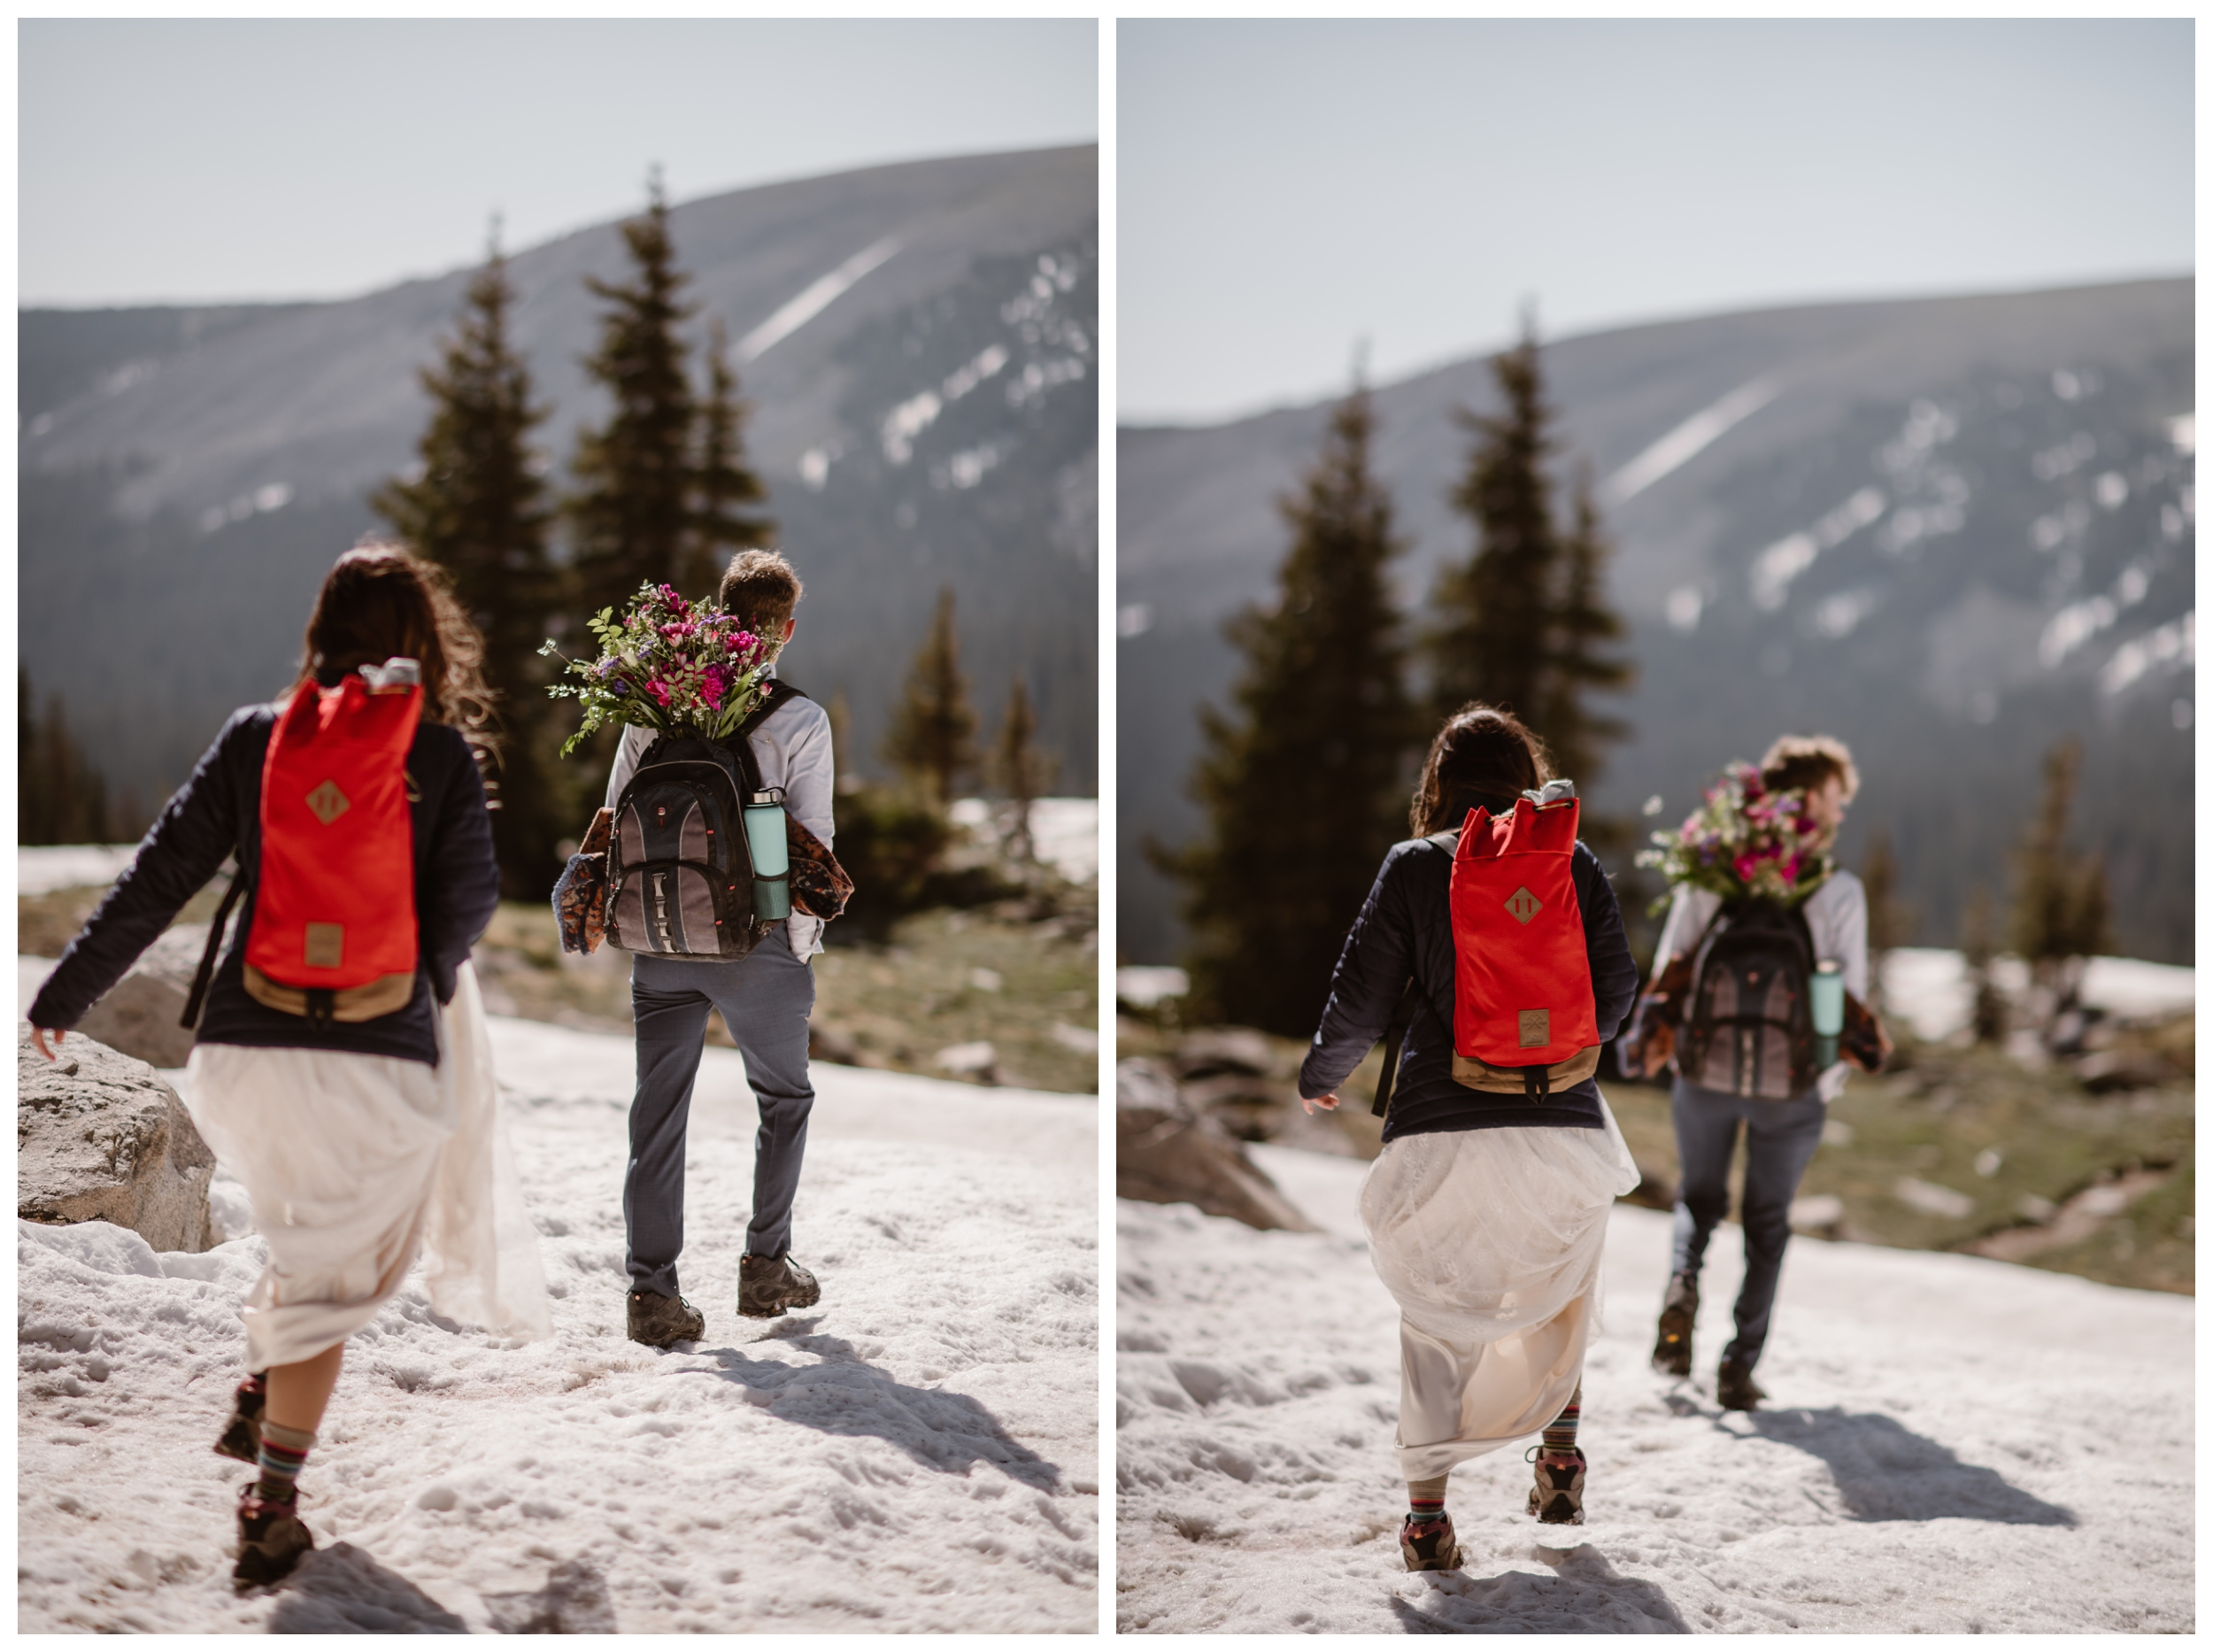 Carrying everything they need for their elopement wedding ceremony on their backs, Karen and Matt begin the hike back down from Lake Isabelle. Photo by Adventure Instead, Maddie Mae.